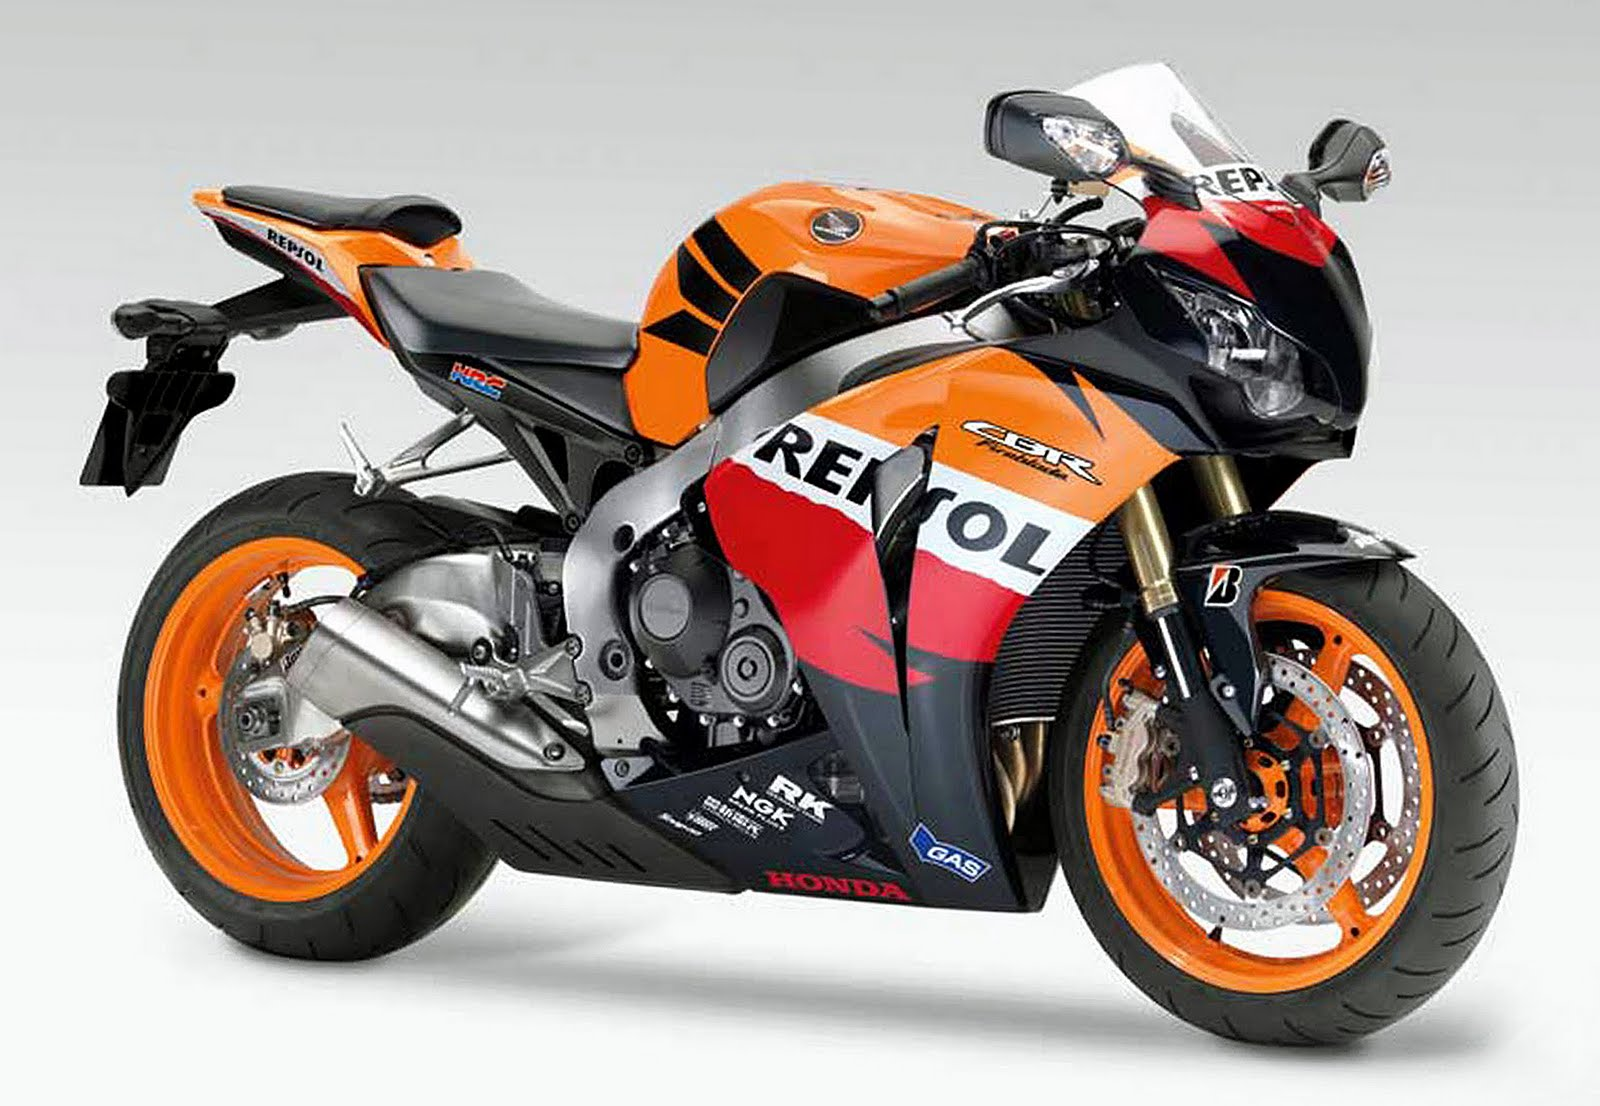 Astounding New Honda Cbr 1000Rr Read More Gmtry Best Dining Table And Chair Ideas Images Gmtryco